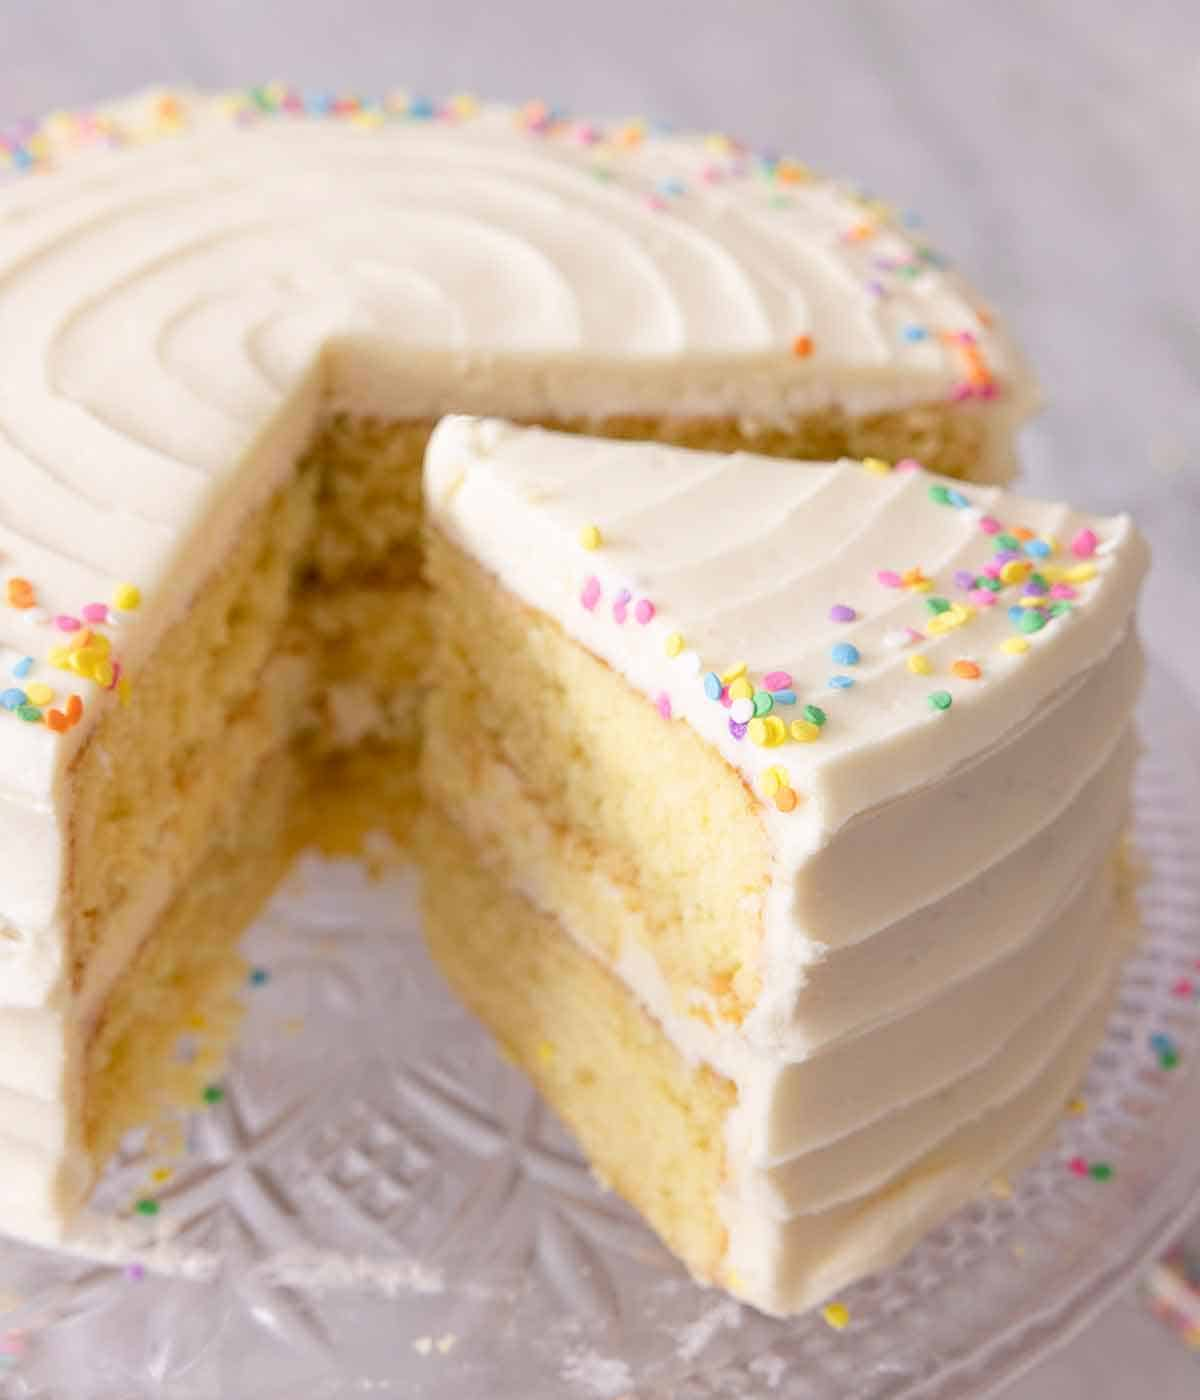 A slice of vanilla cake cut and separated from the cake.